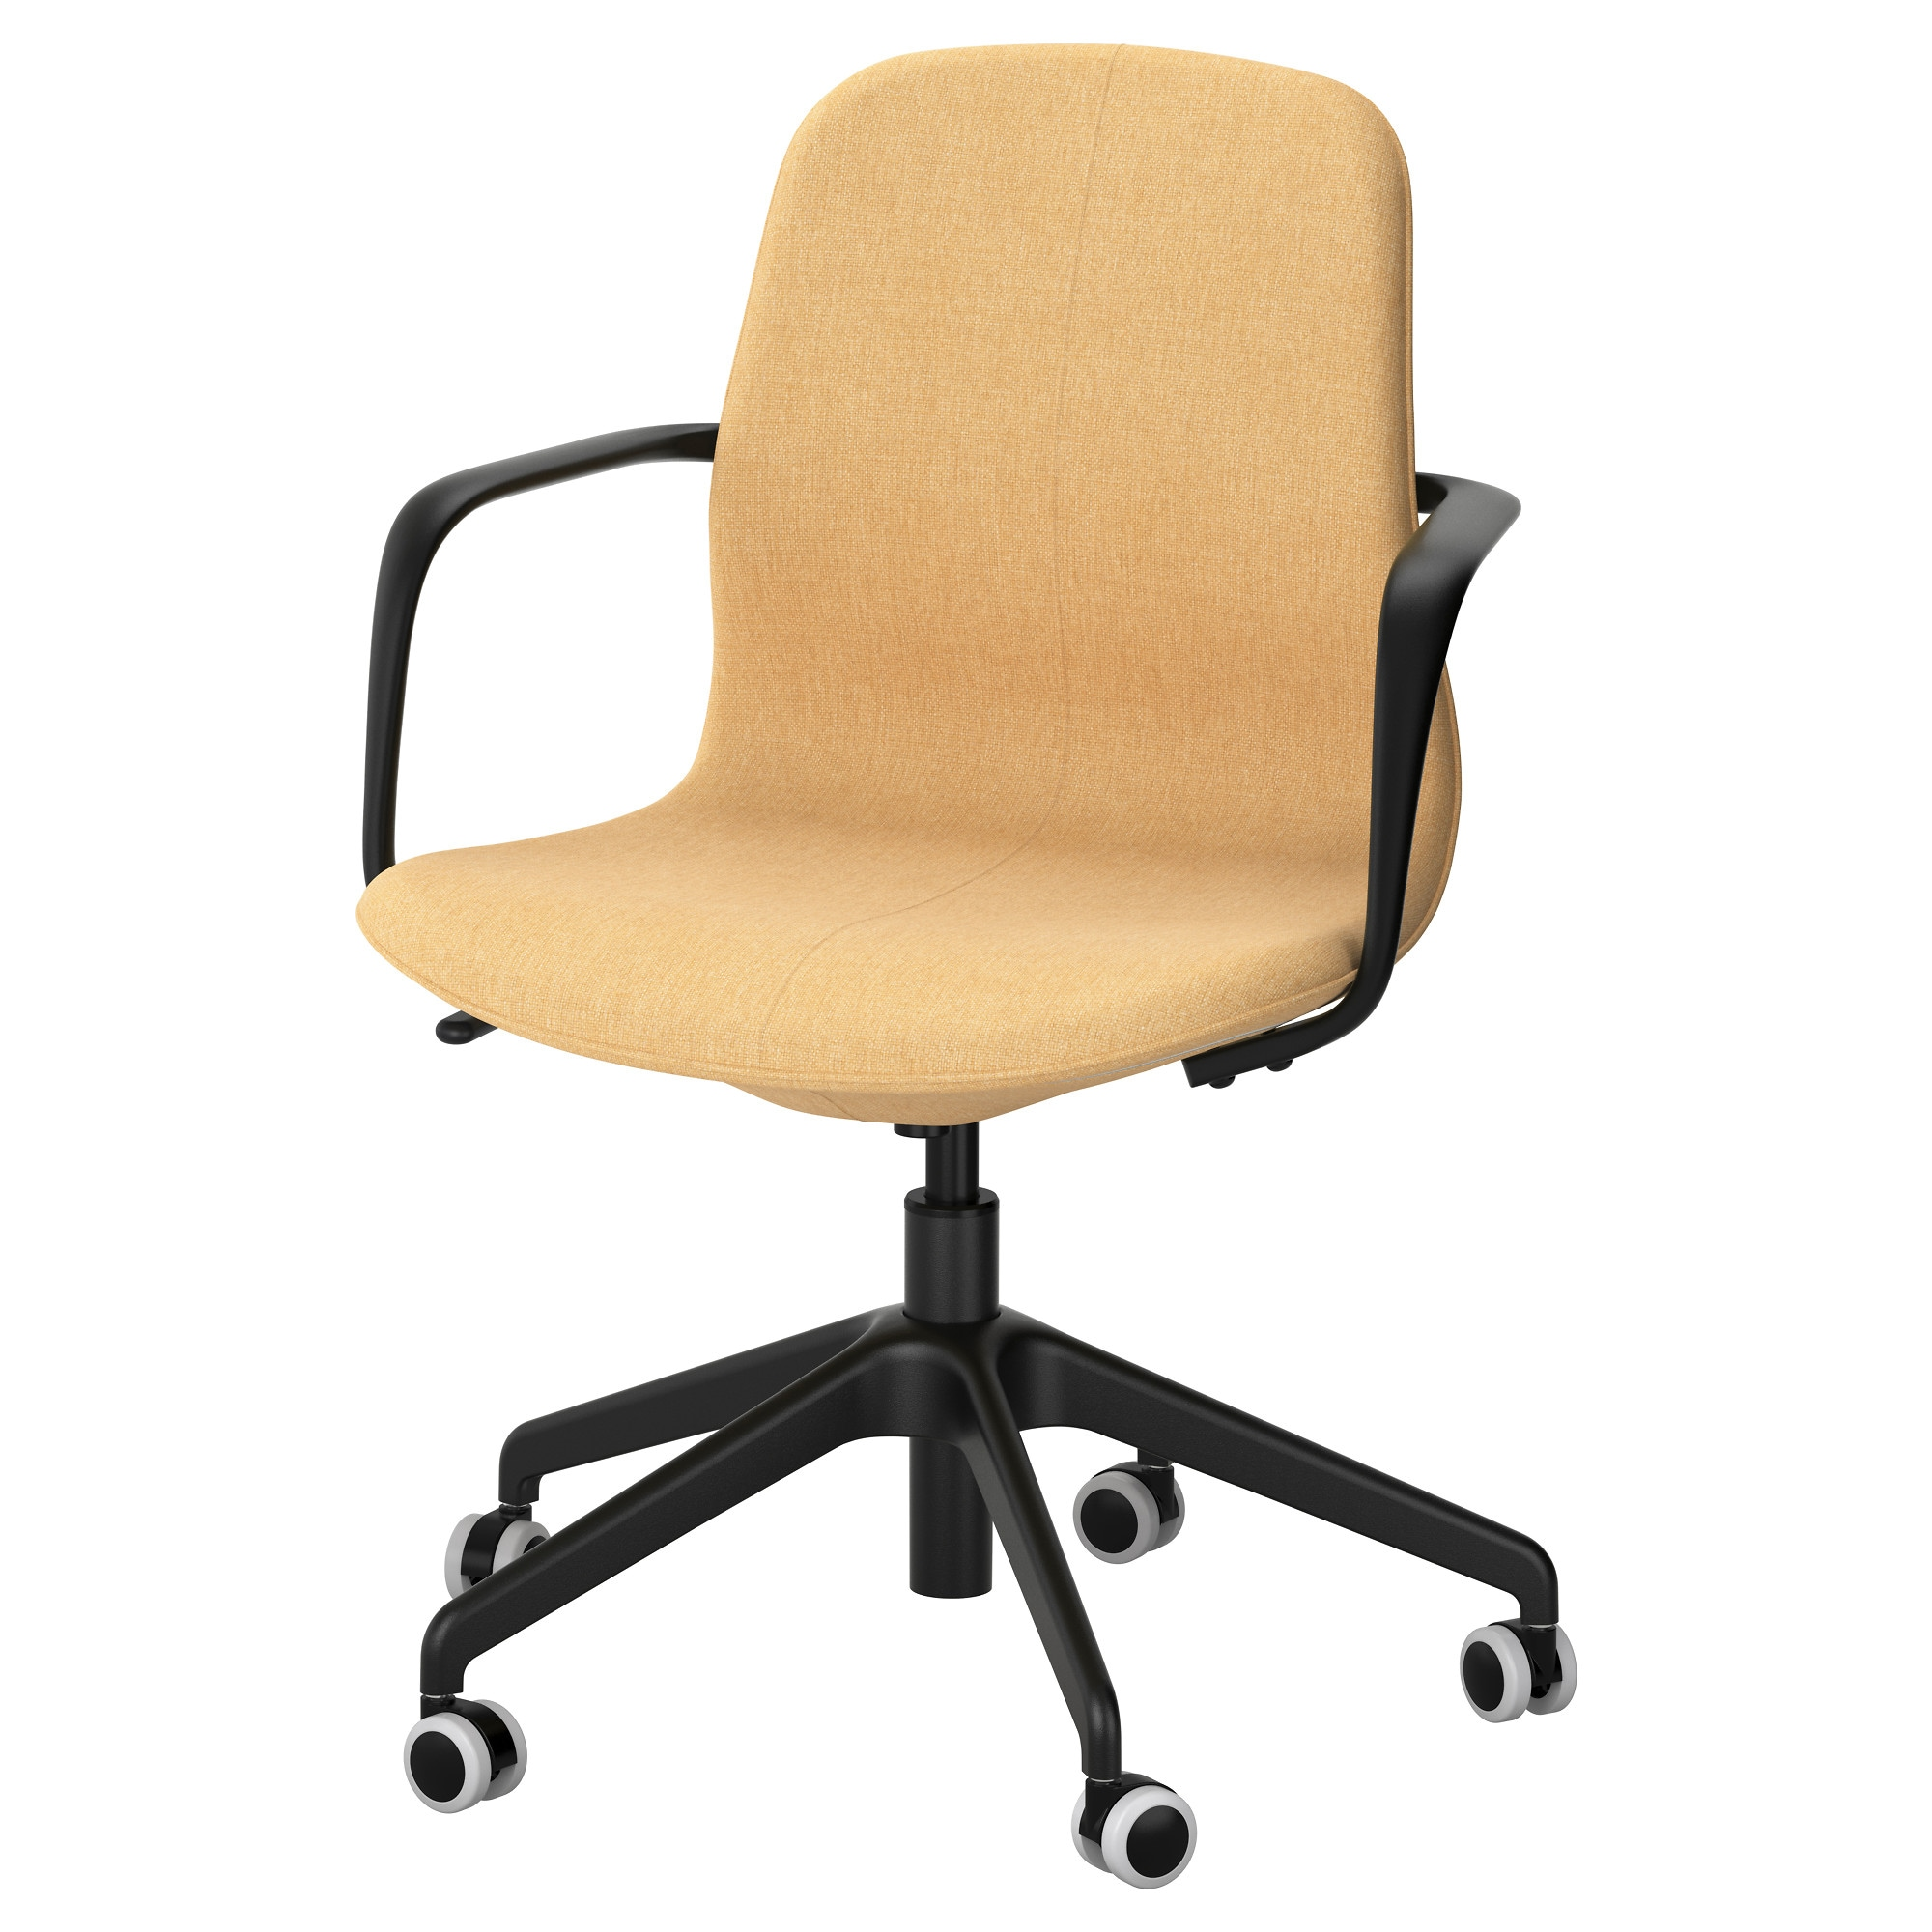 office chairs - ikea